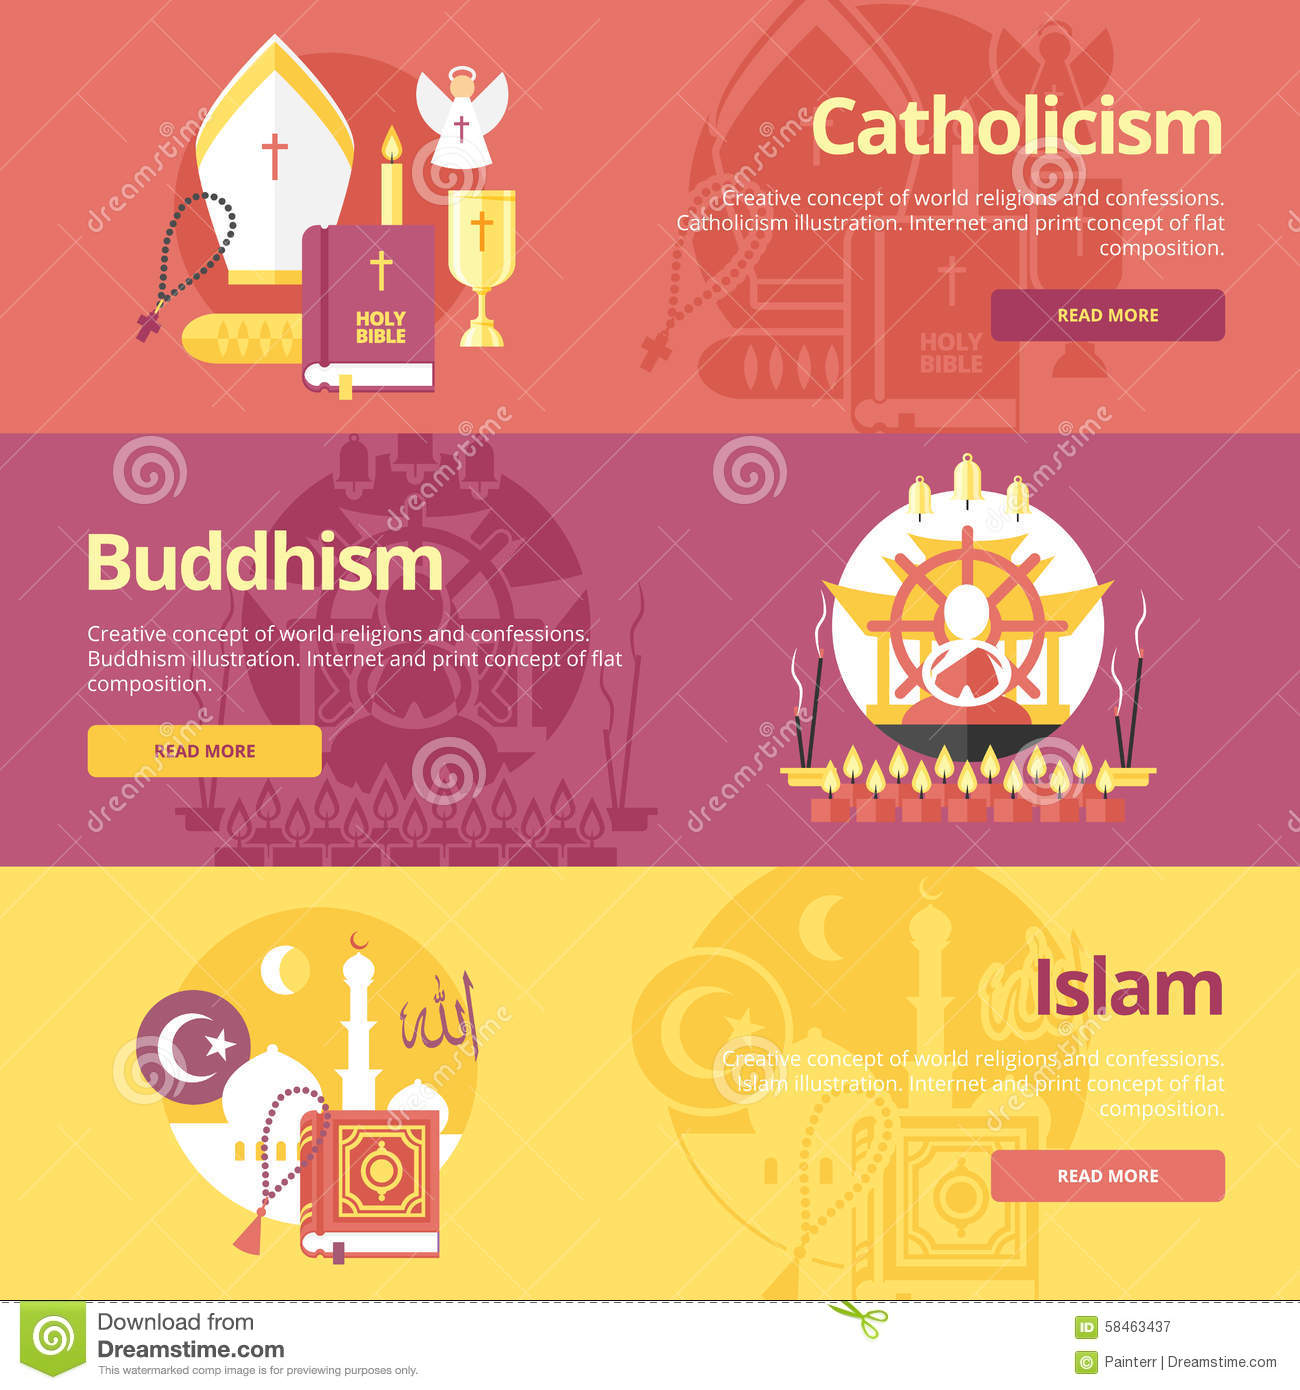 buddhism and catholicism Practices prayer, sacraments (some branches), worship in church, reading of the bible, acts of charity, communion meditation, yoga, contemplation, yagna (communal worship), offerings in the temple use of statues and pictures in catholic & orthodox churches common goal of religion to love god and.